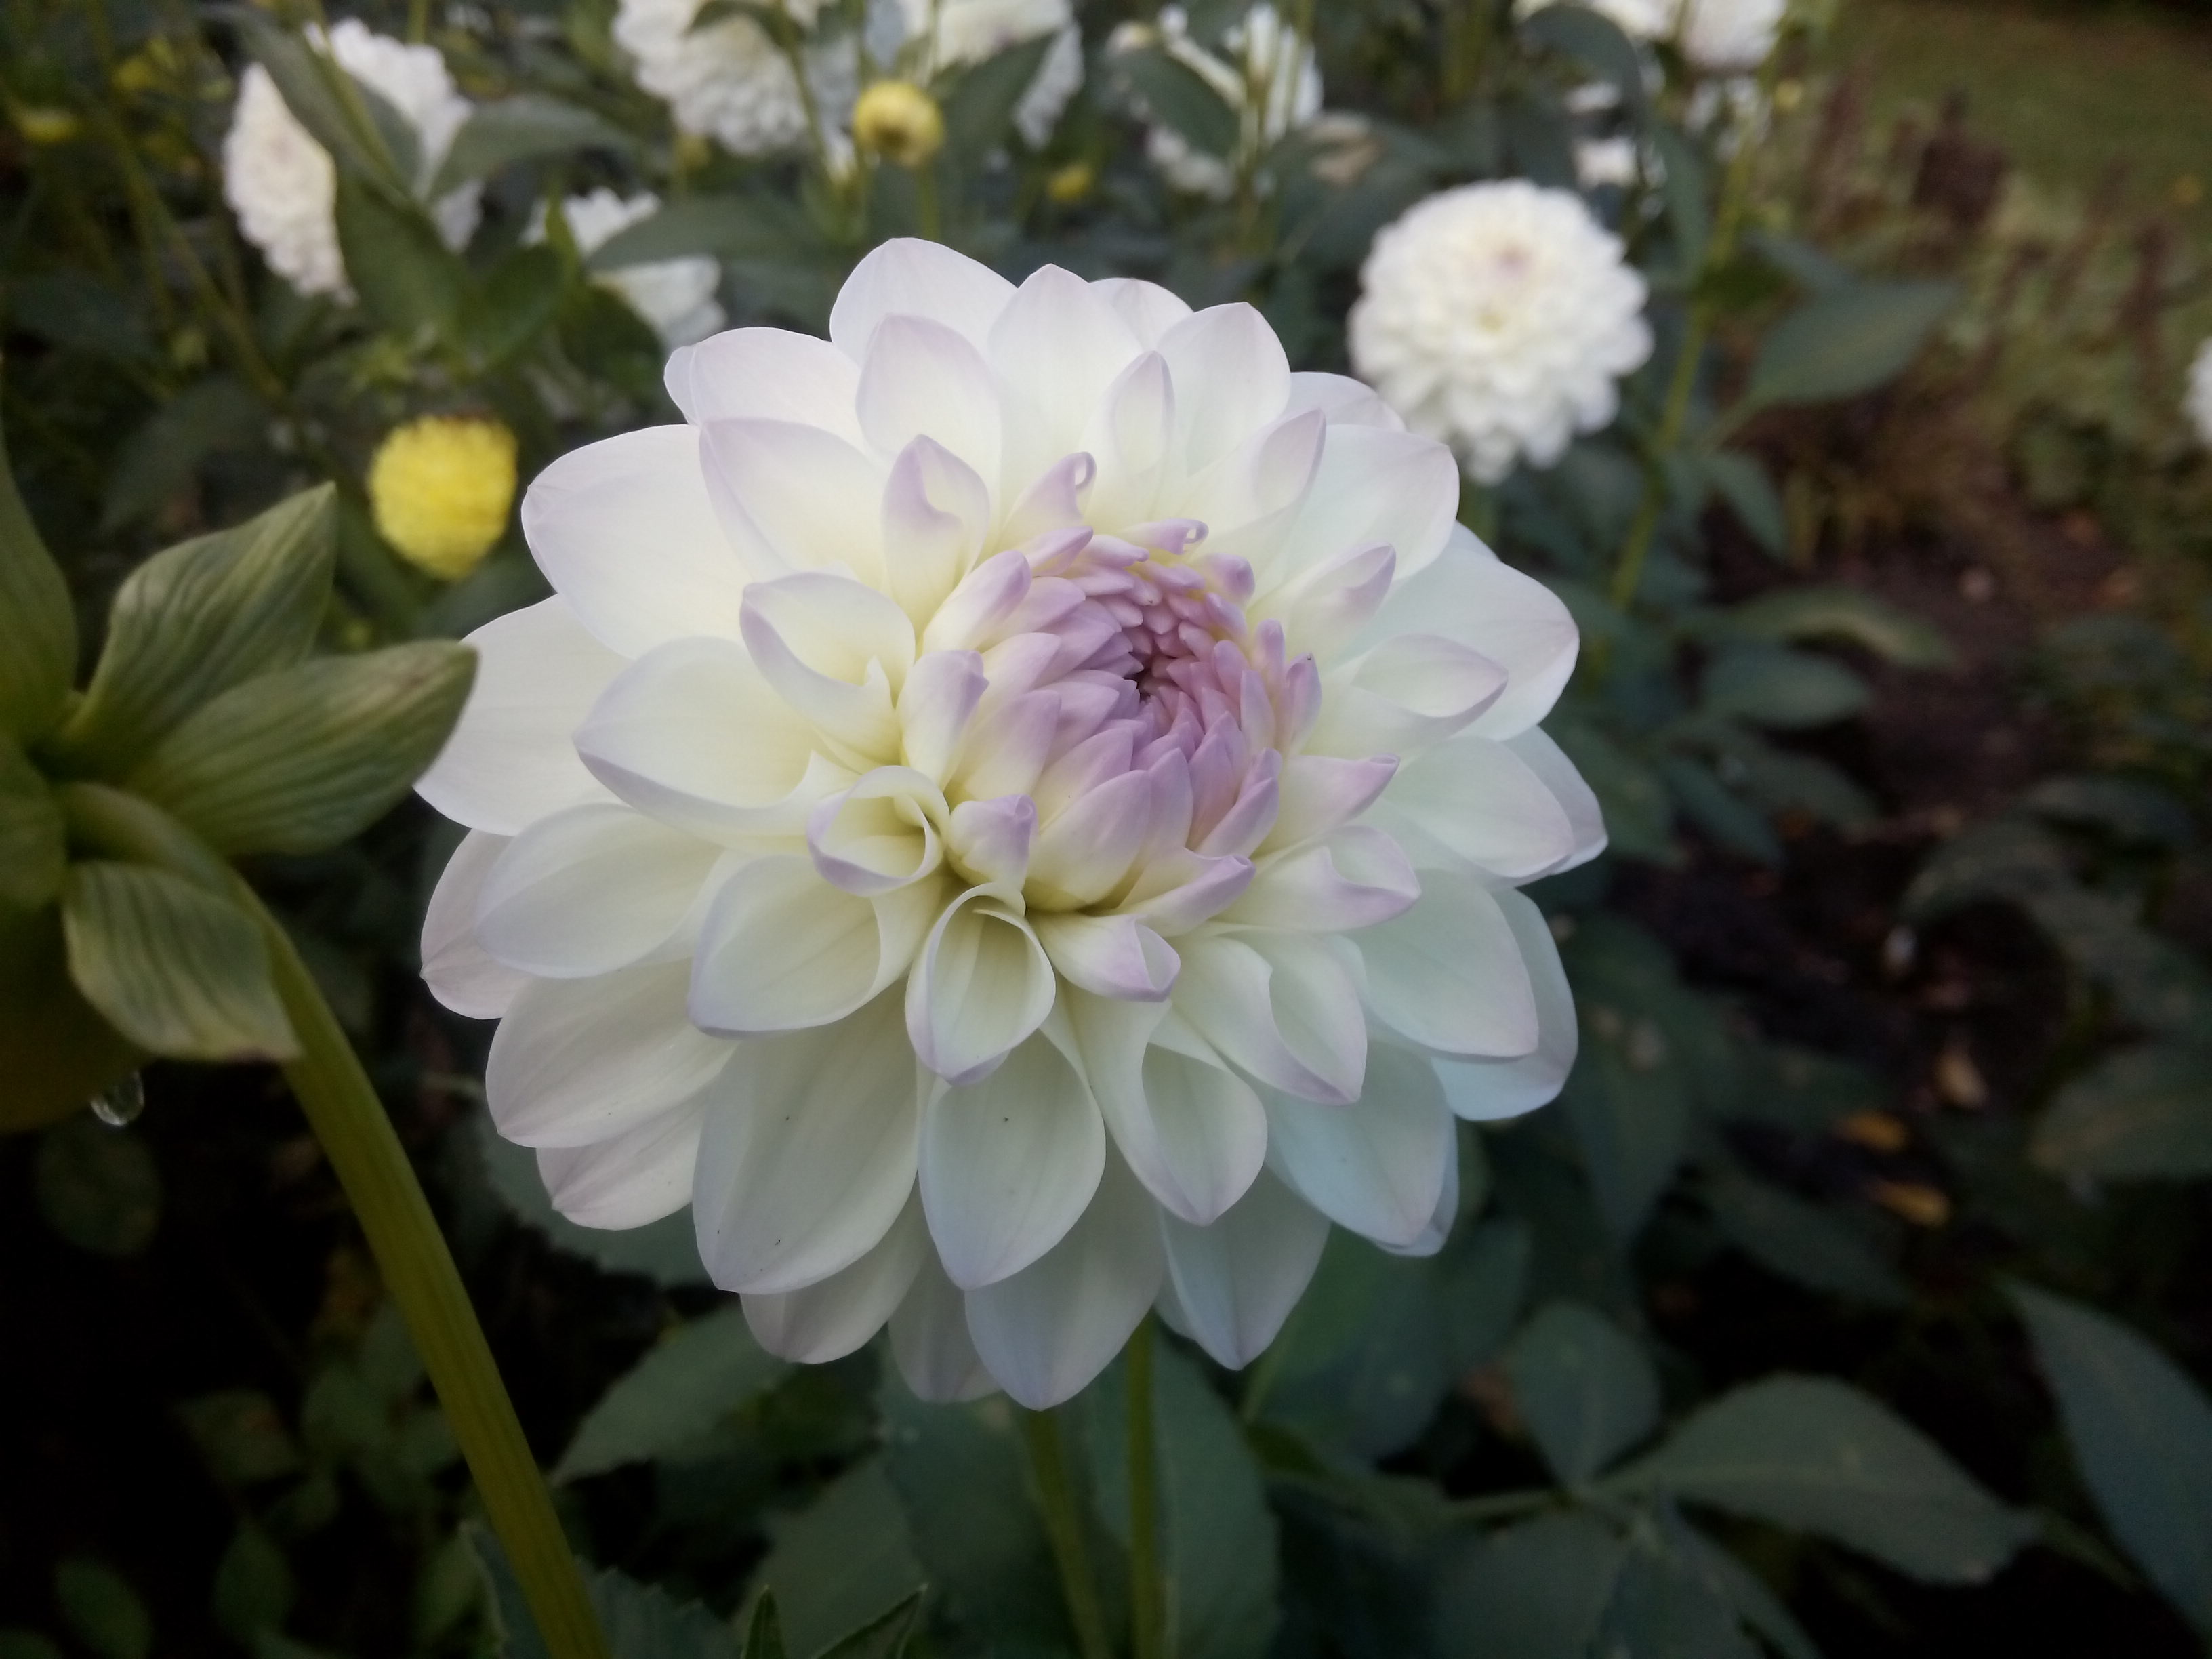 Close up of a white dahlia